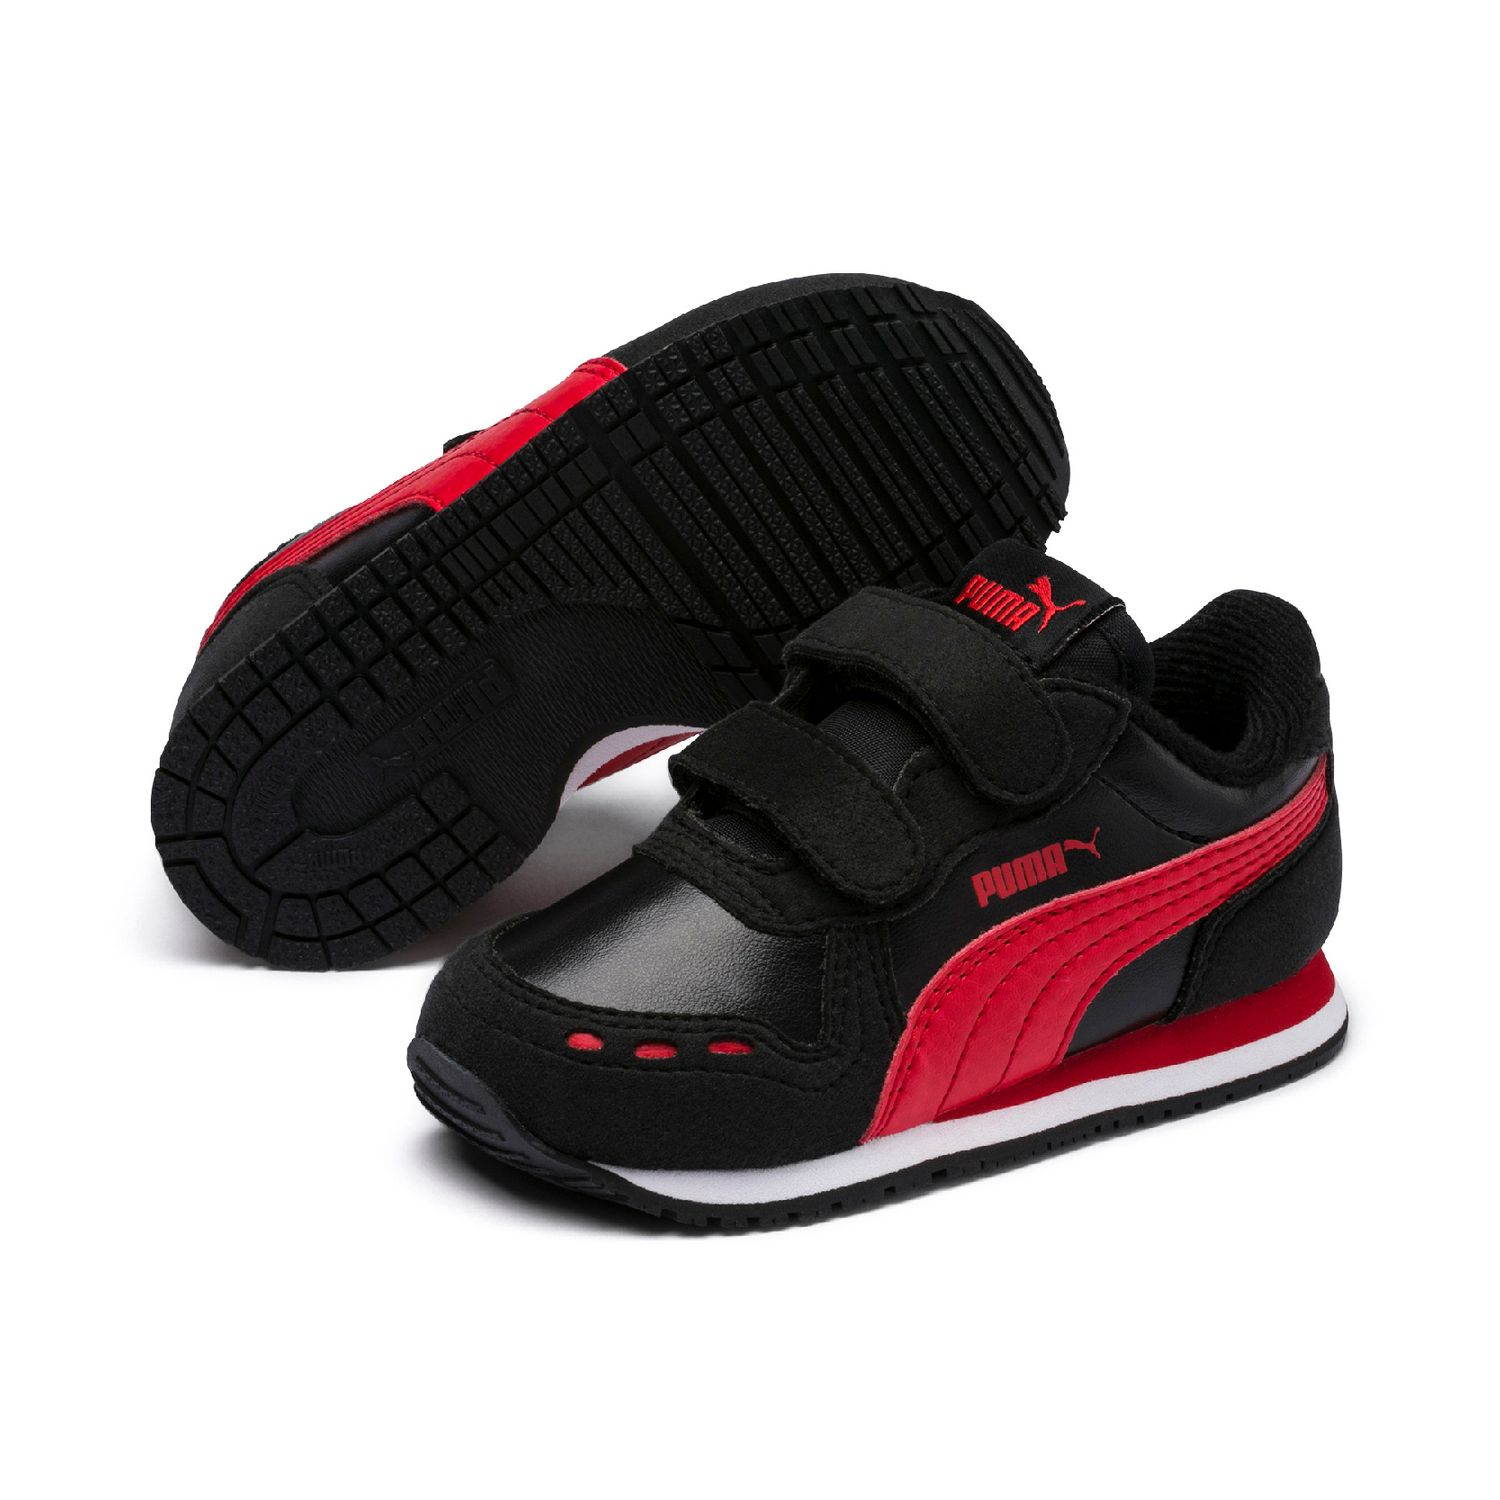 1feaae09b6 Details about Puma Cabana Racer Sl V Inf Children Shoes Trainers 351980 Puma  Black Red